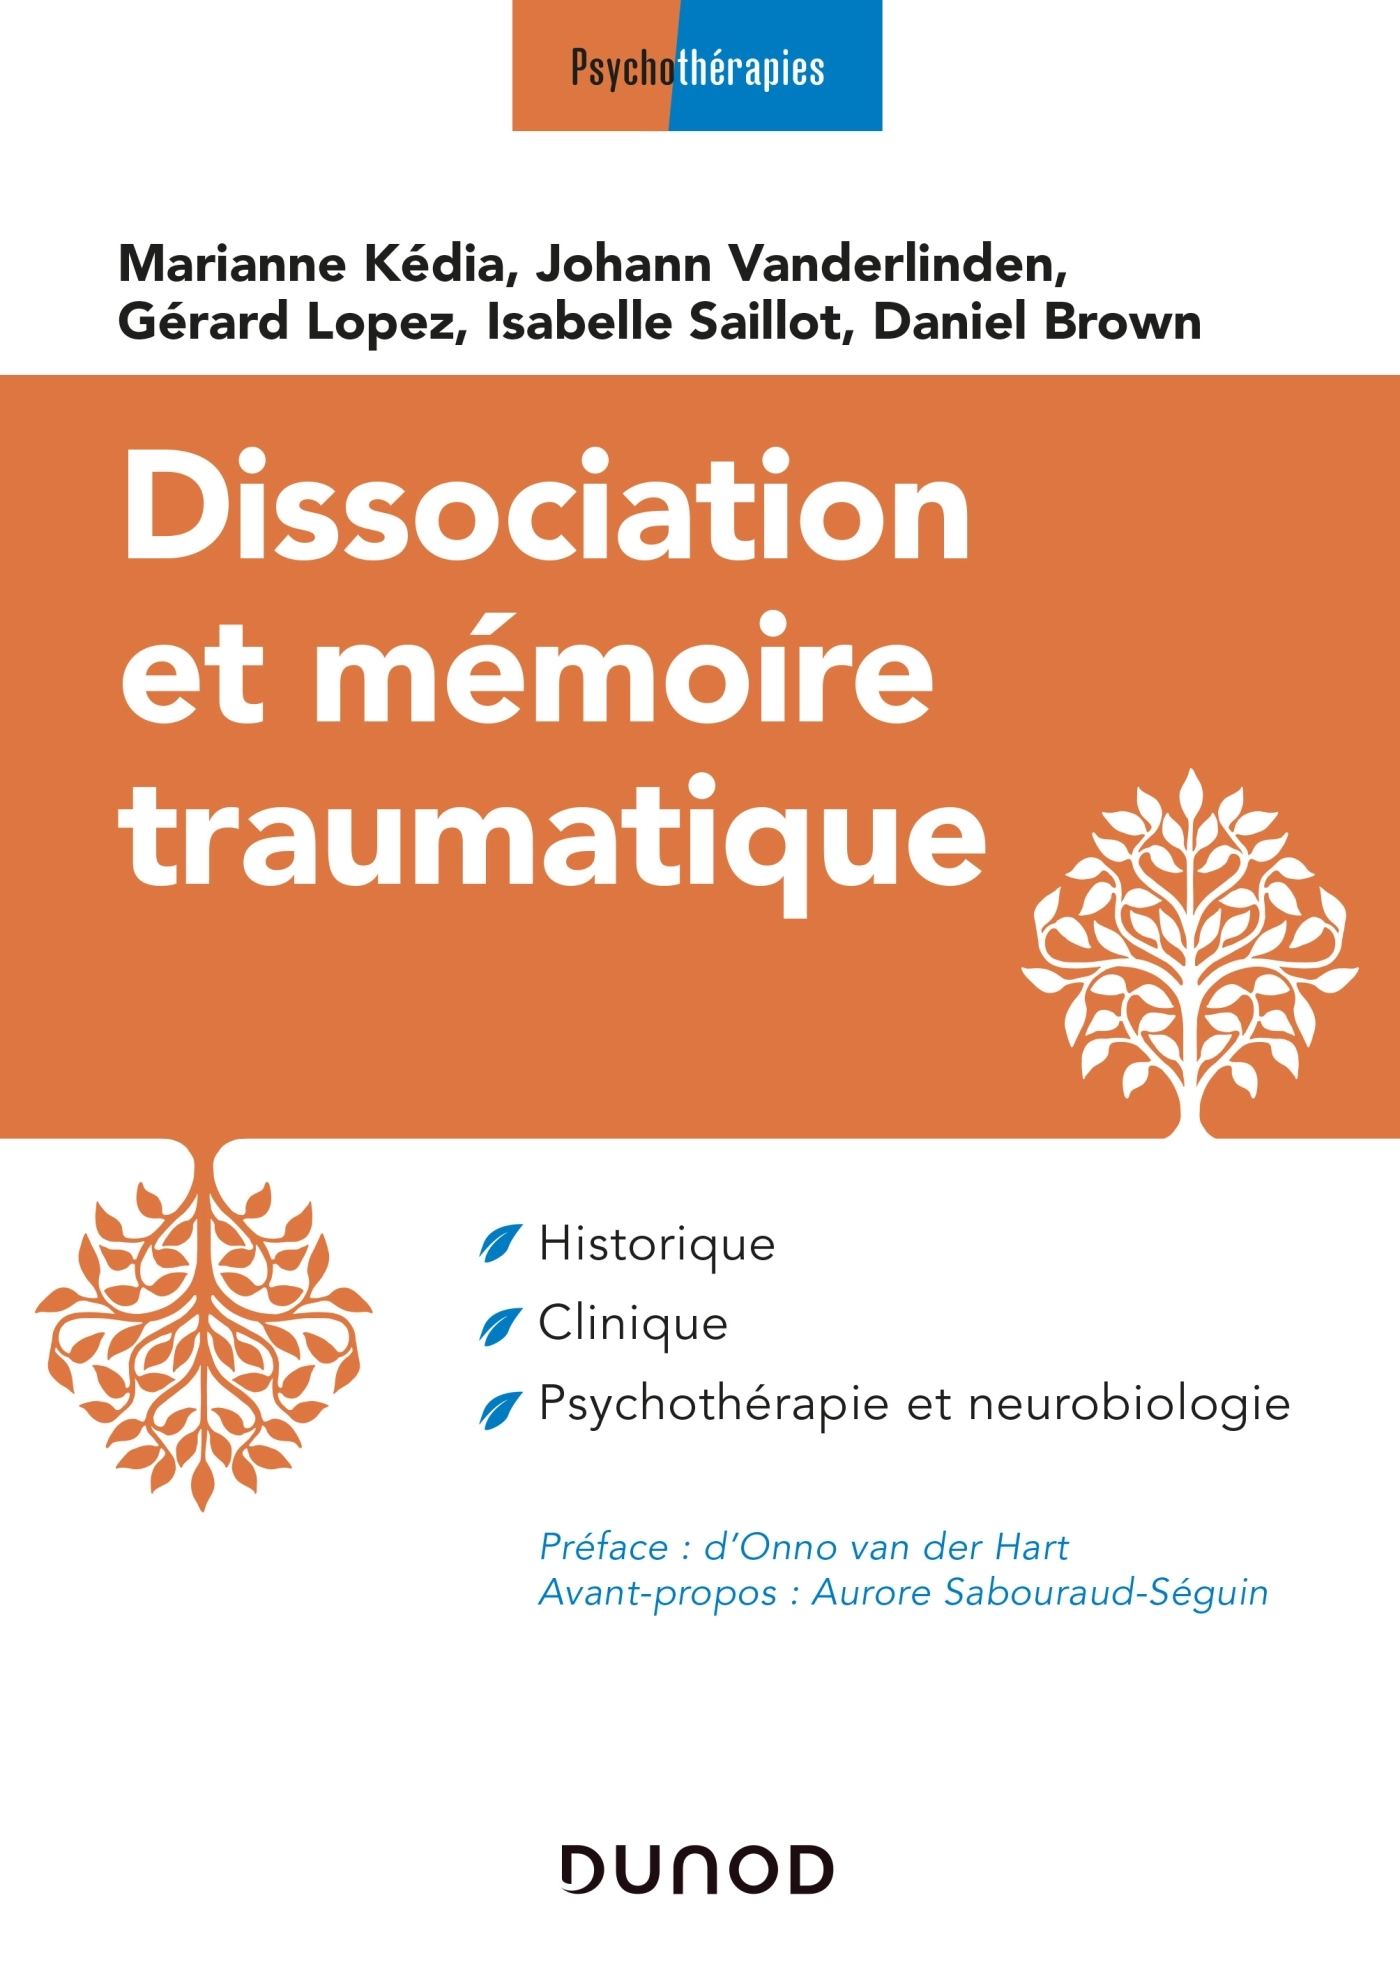 DISSOCIATION ET MEMOIRE TRAUMATIQUE